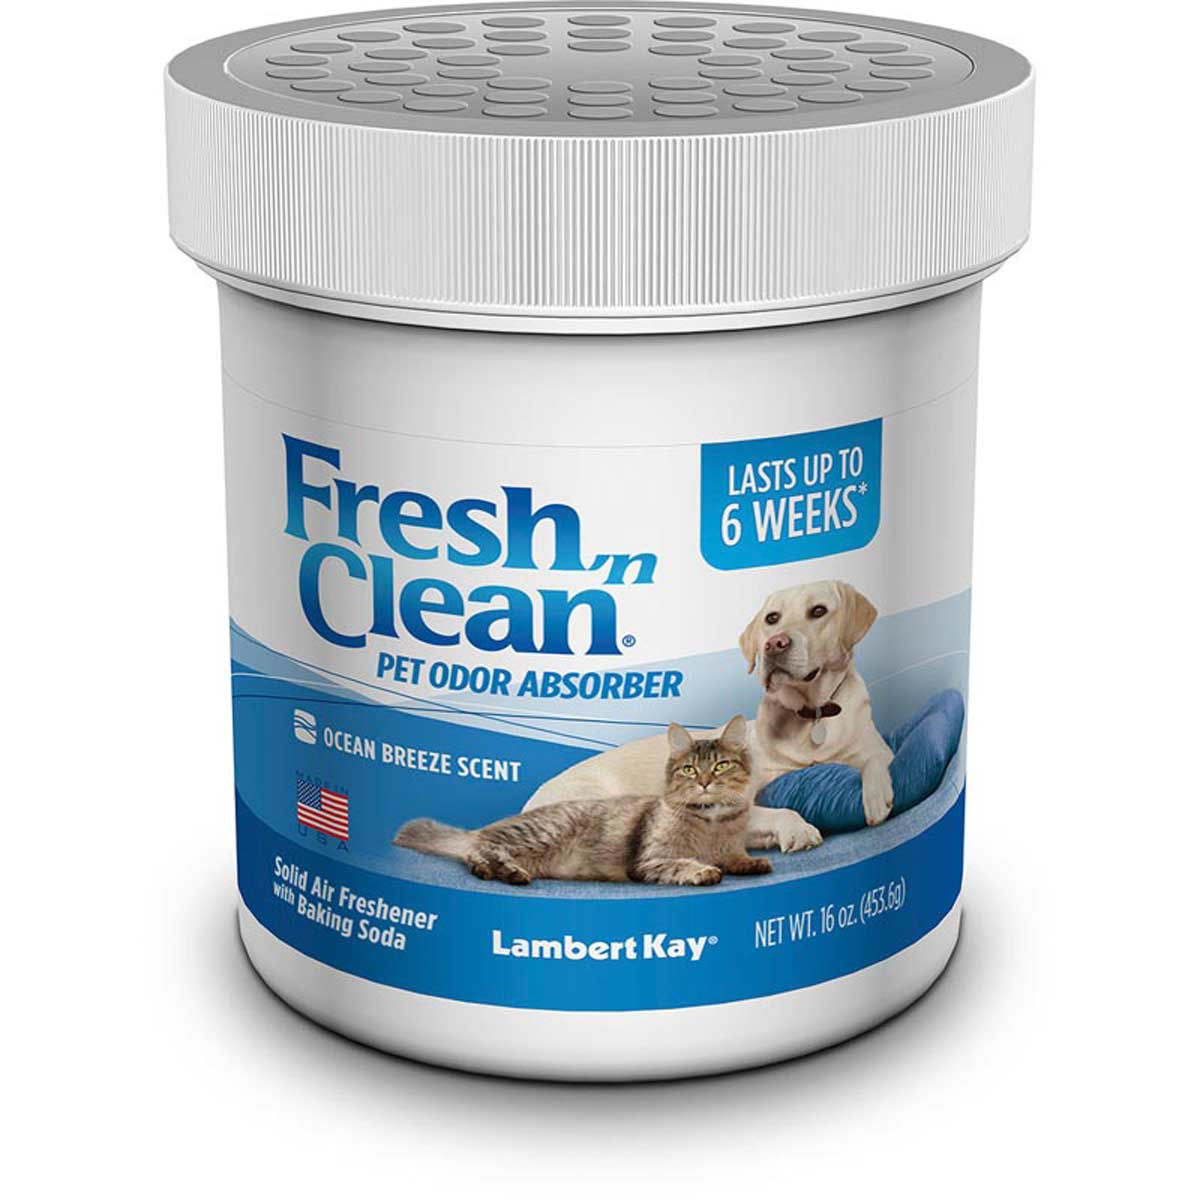 Fresh n Clean Pet Odor Absorber Ocean Breeze 16 oz Jar